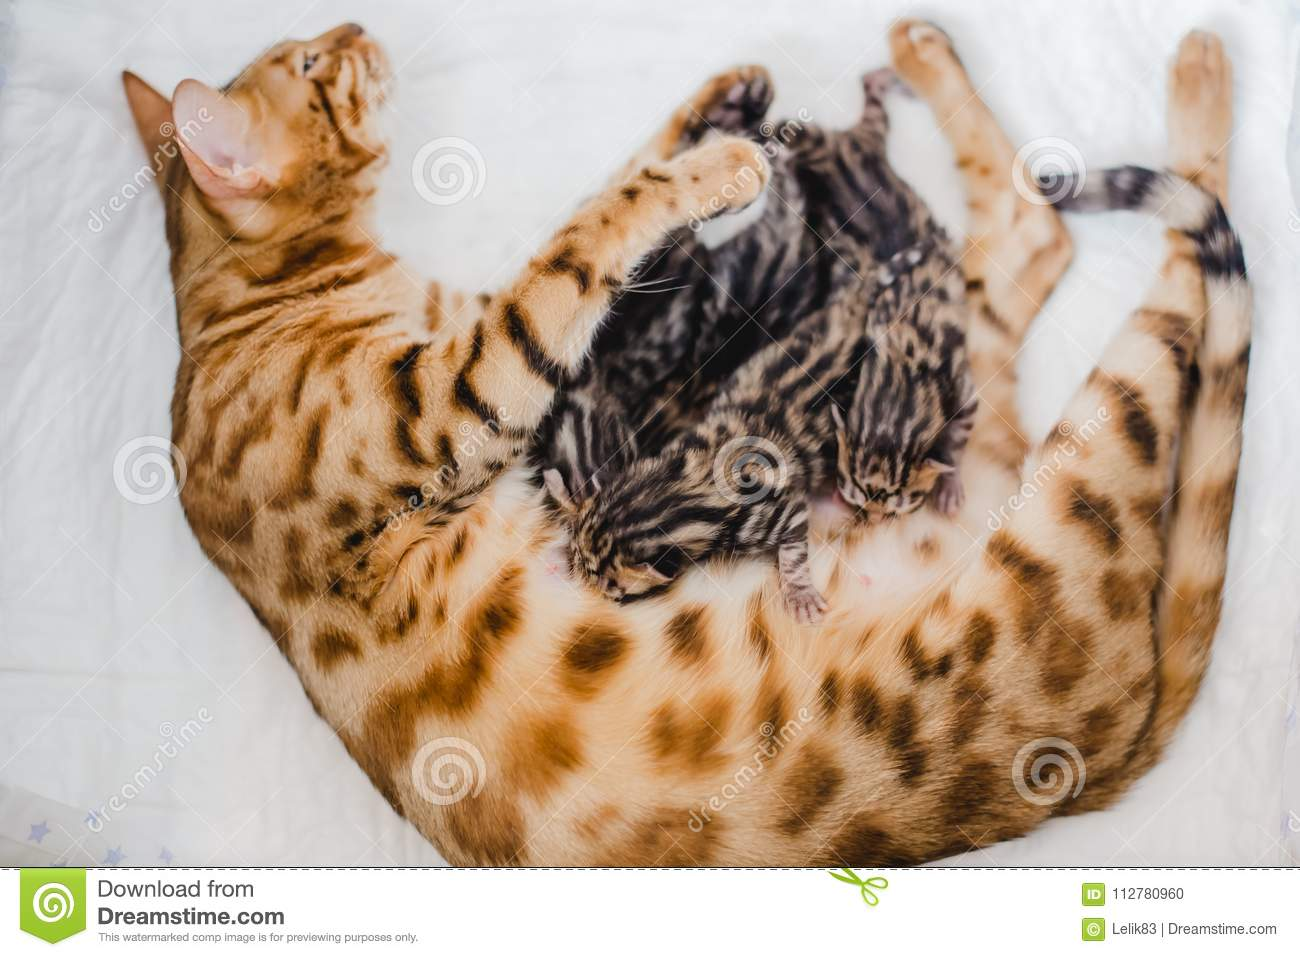 Cattery Of Bengalcats Kitten Stock Photo - Image of young